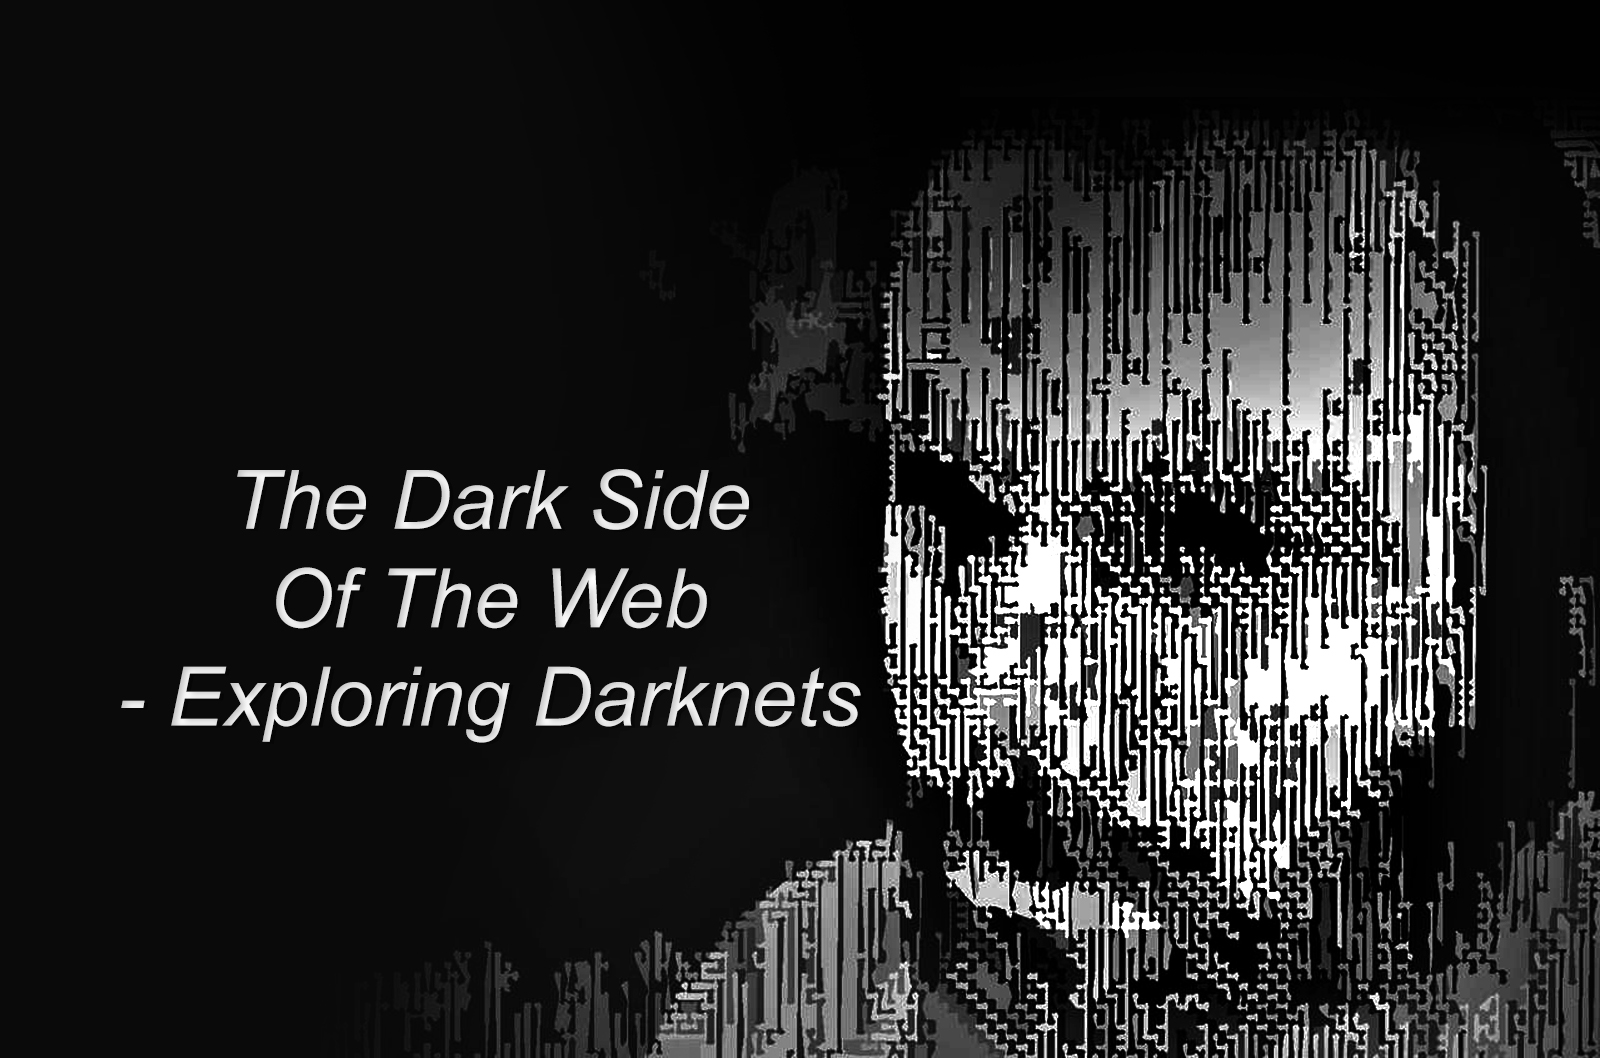 the web s dark side Self-harm sites and cyberbullying: the threat to children from web's dark side.